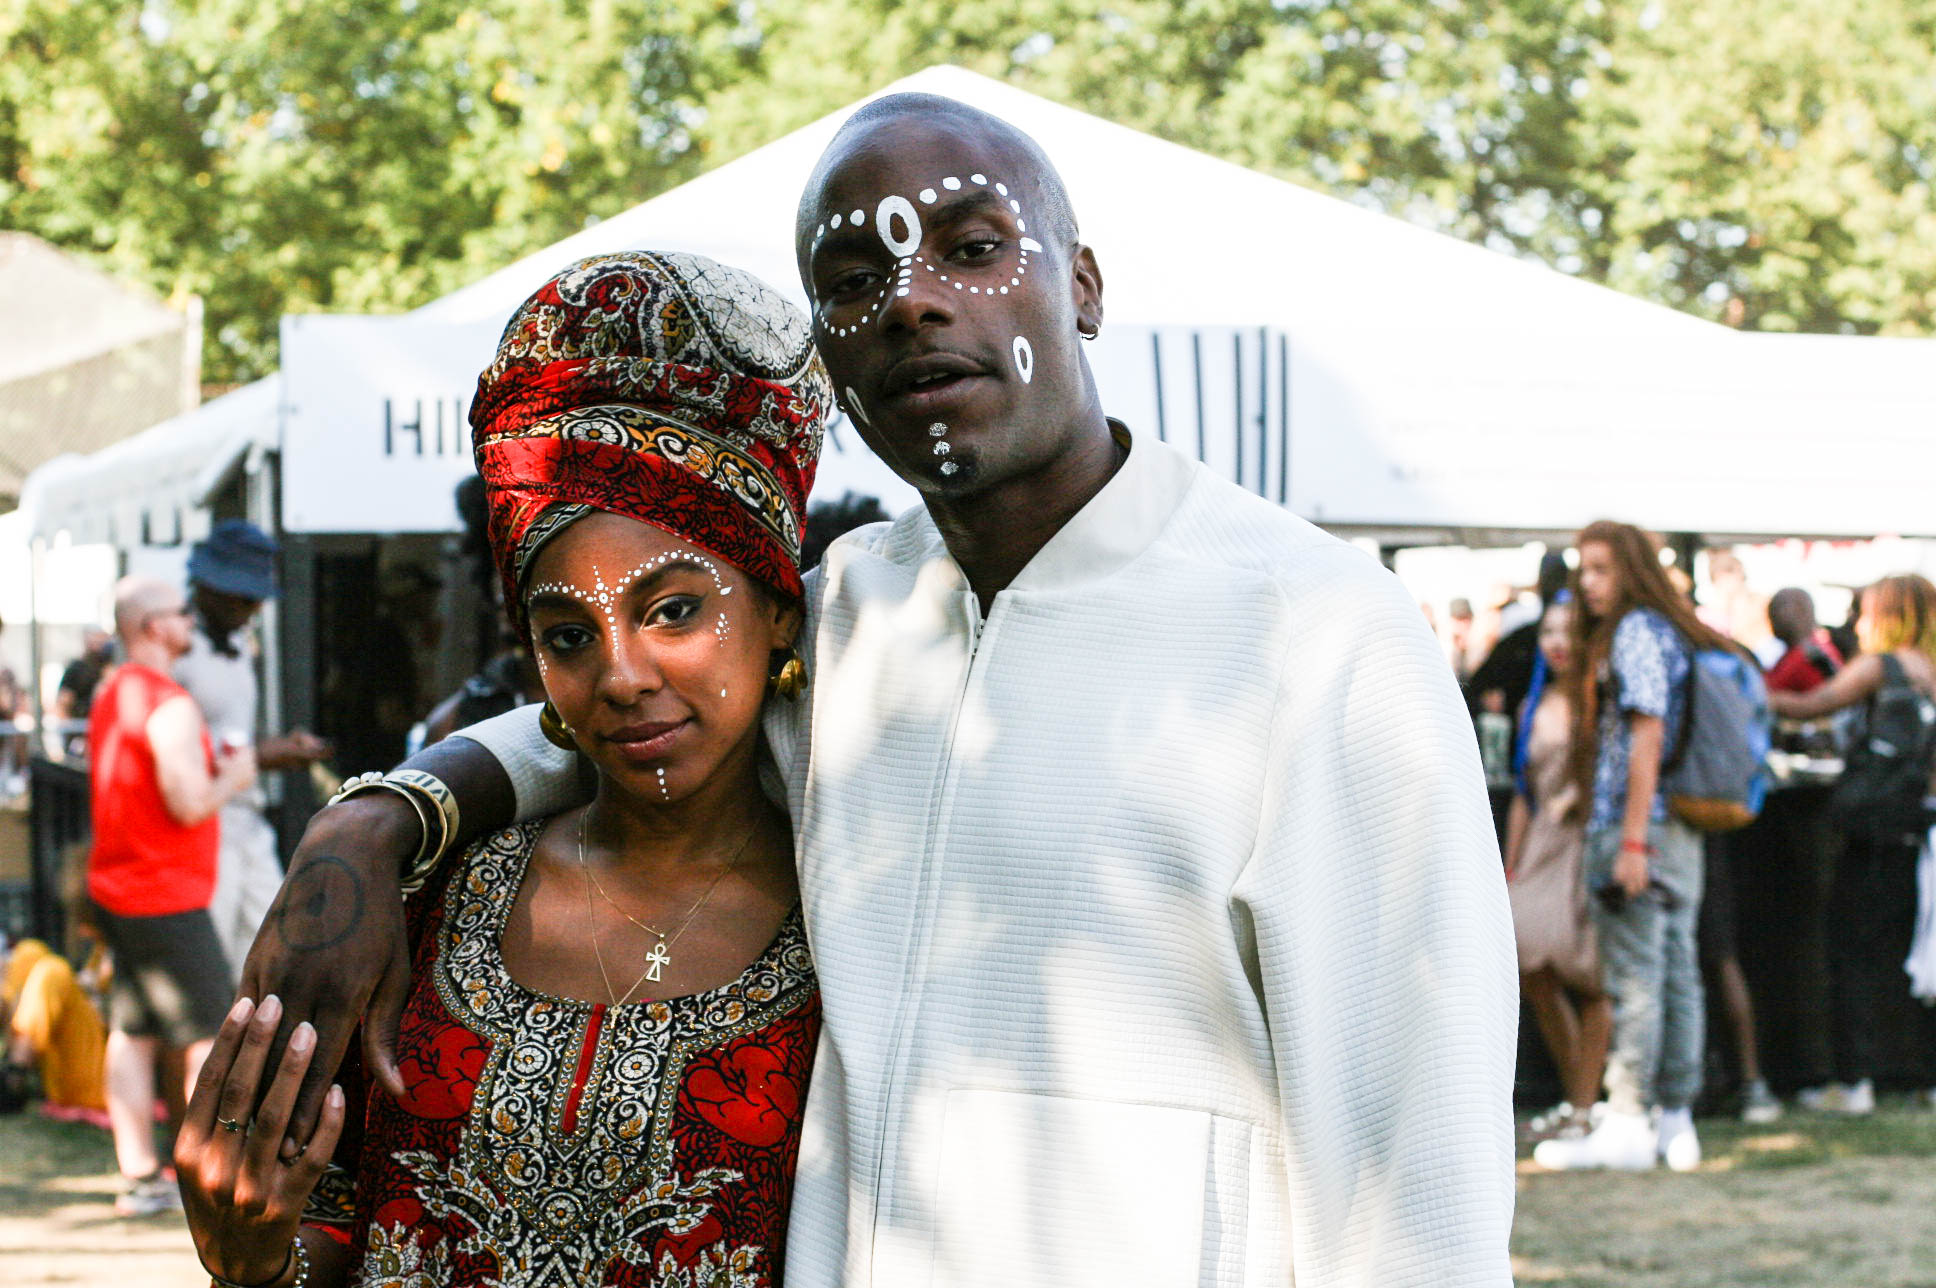 @youngparis & @itsmissjessica at @enitan_vintage / @liberatedpeople stand at #afropunk